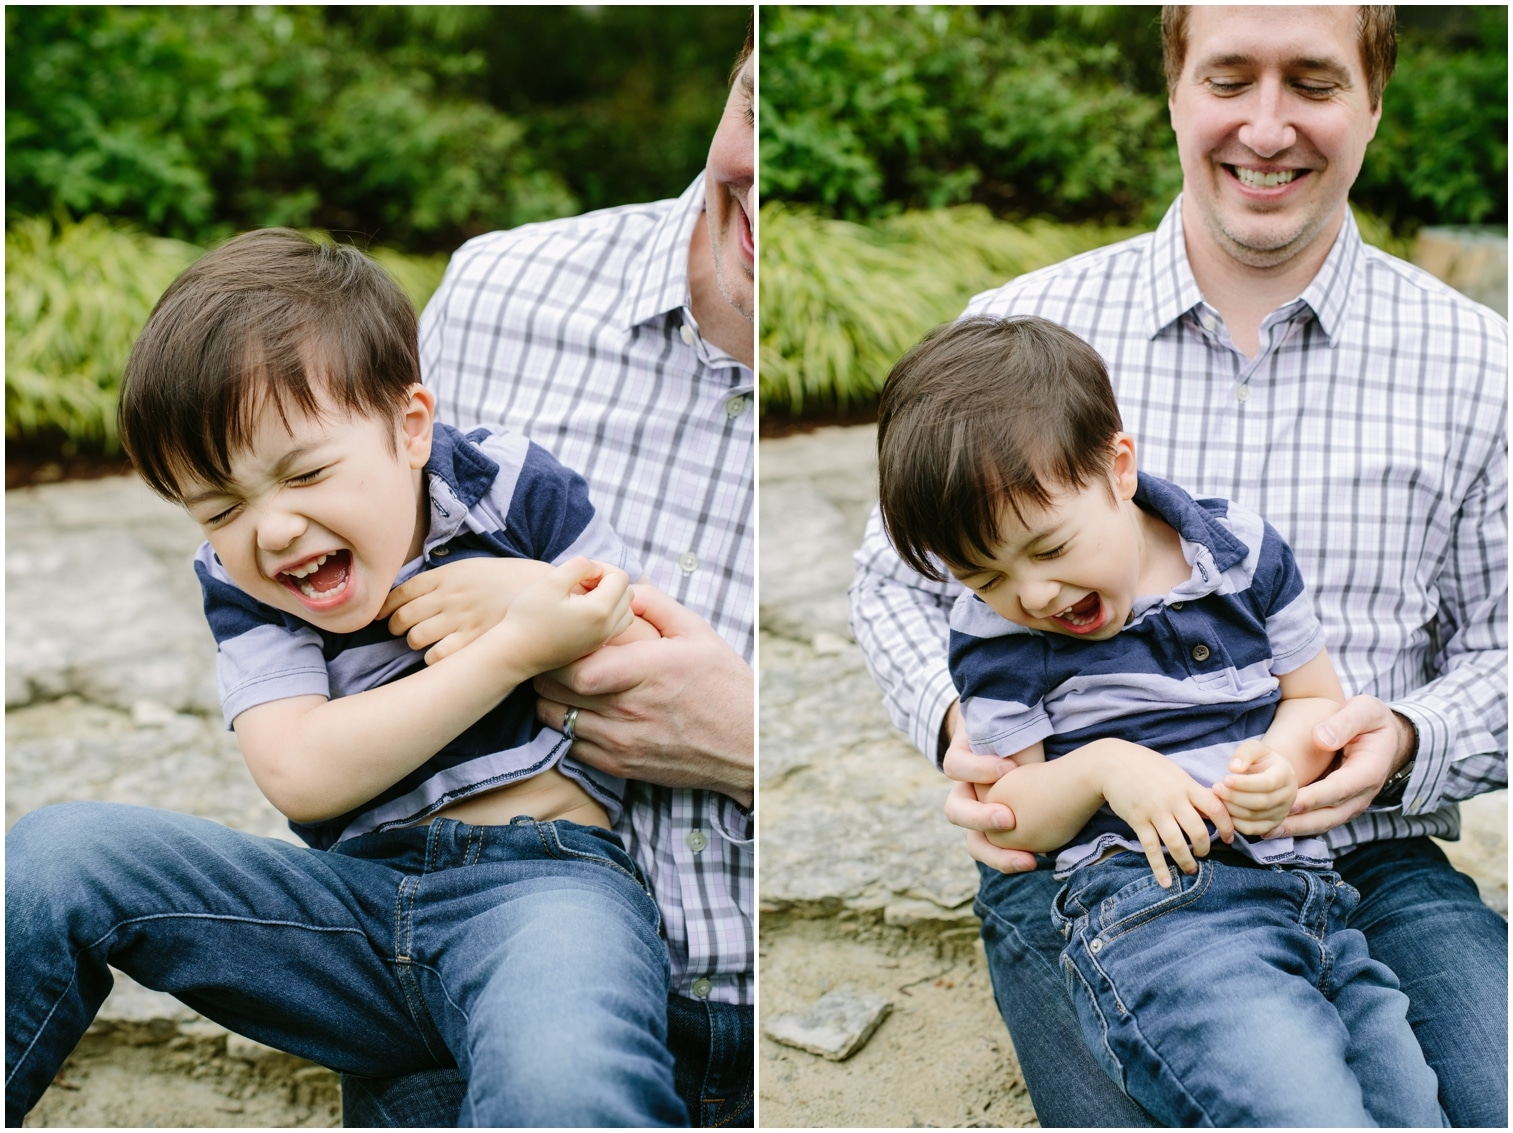 adam lowe photography, family session, love, ohio, Franklin Park Conservatory, Botanical, Garden, Fun, outside, outdoors, style, River Park Dental